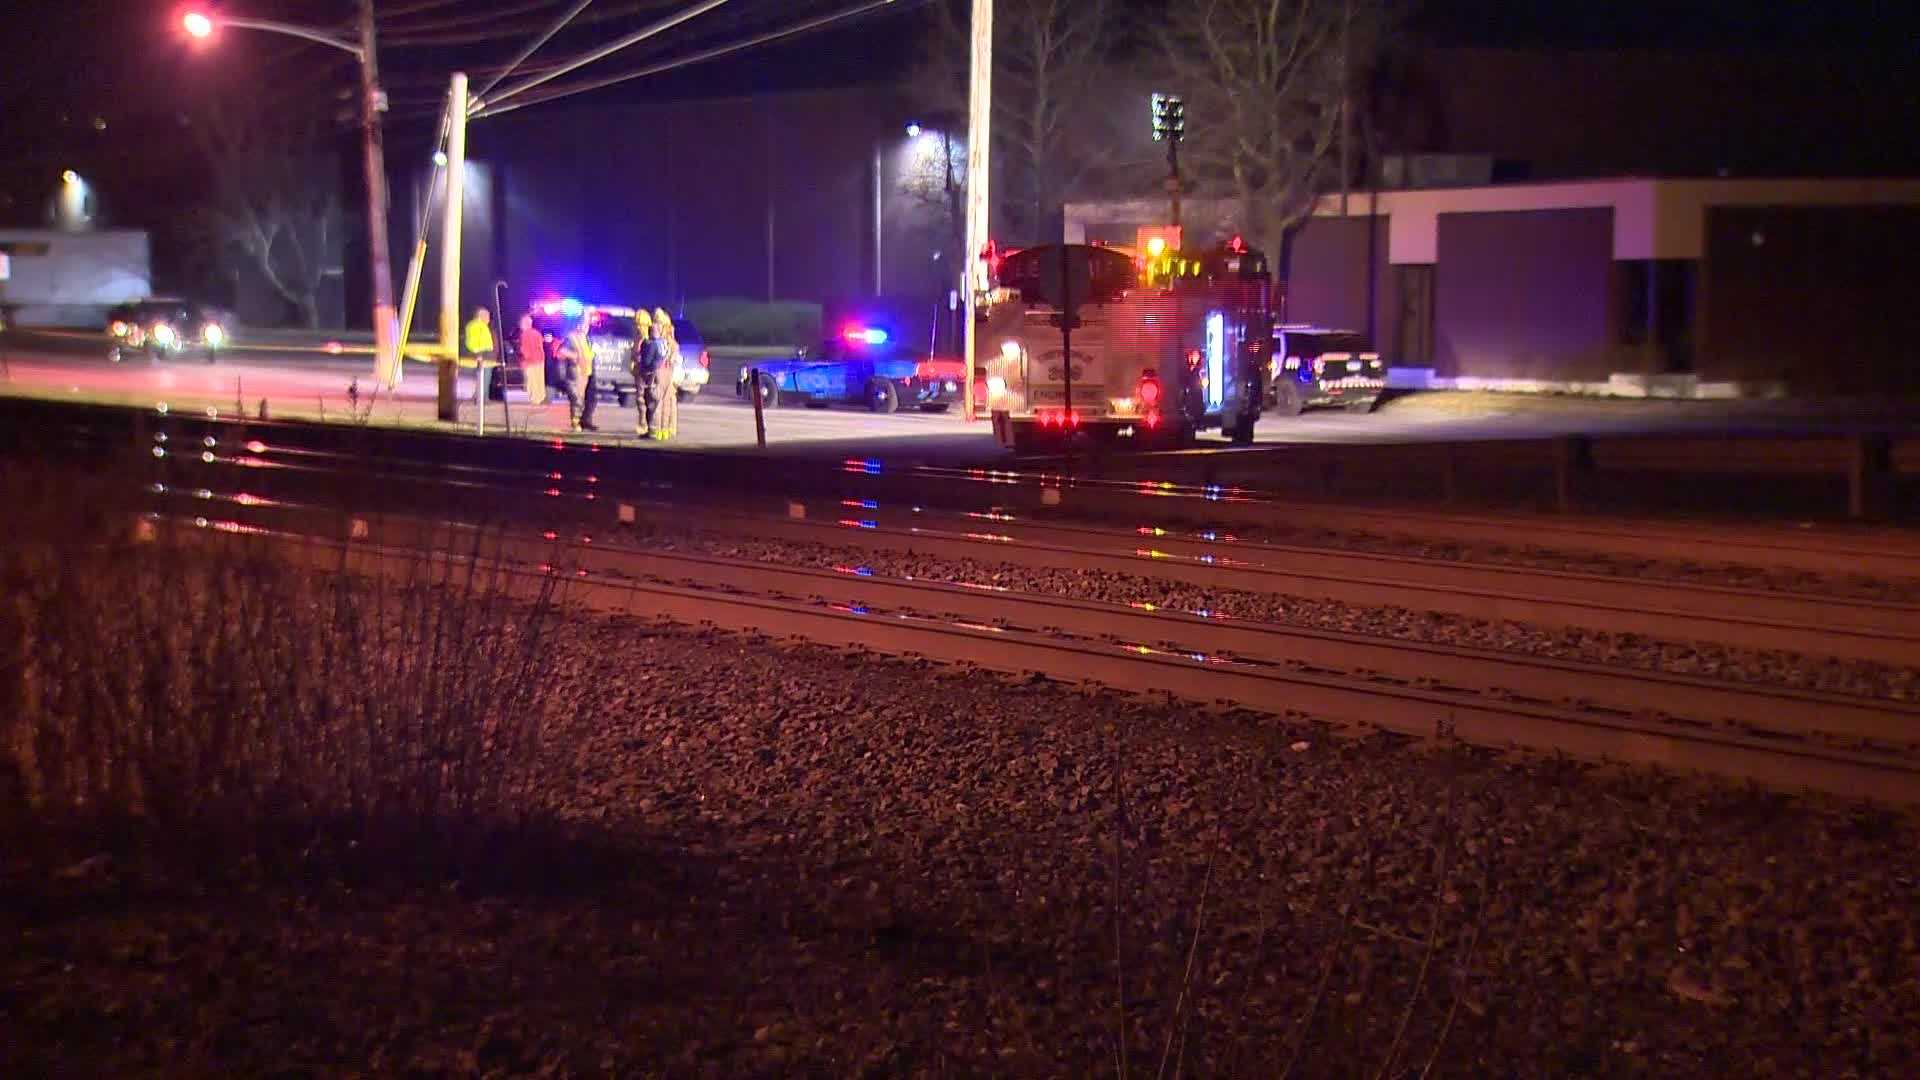 Police investigating the death of a woman Tuesday night who was hit by a train in Leetsdale.